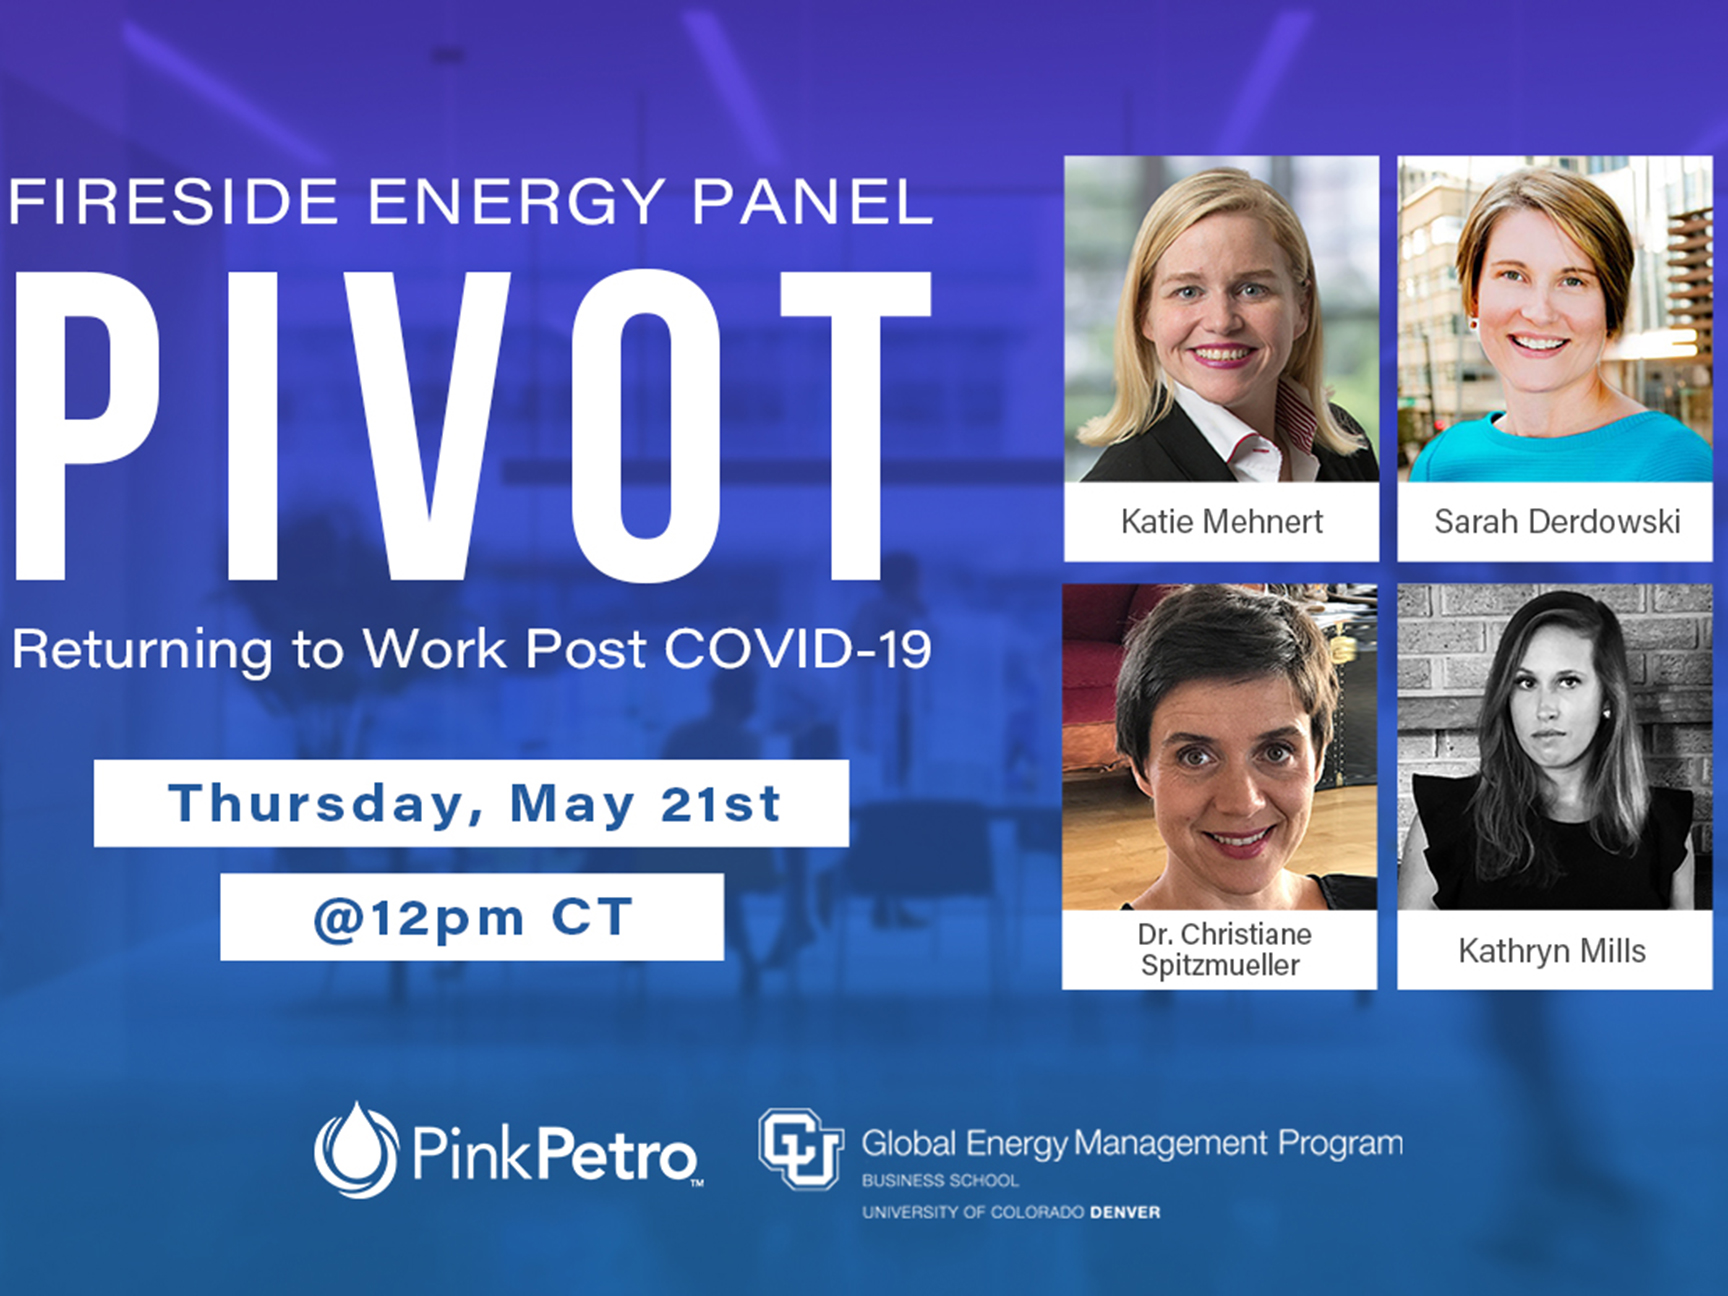 Fireside Energy Panel: The Future of Work in Energy Image